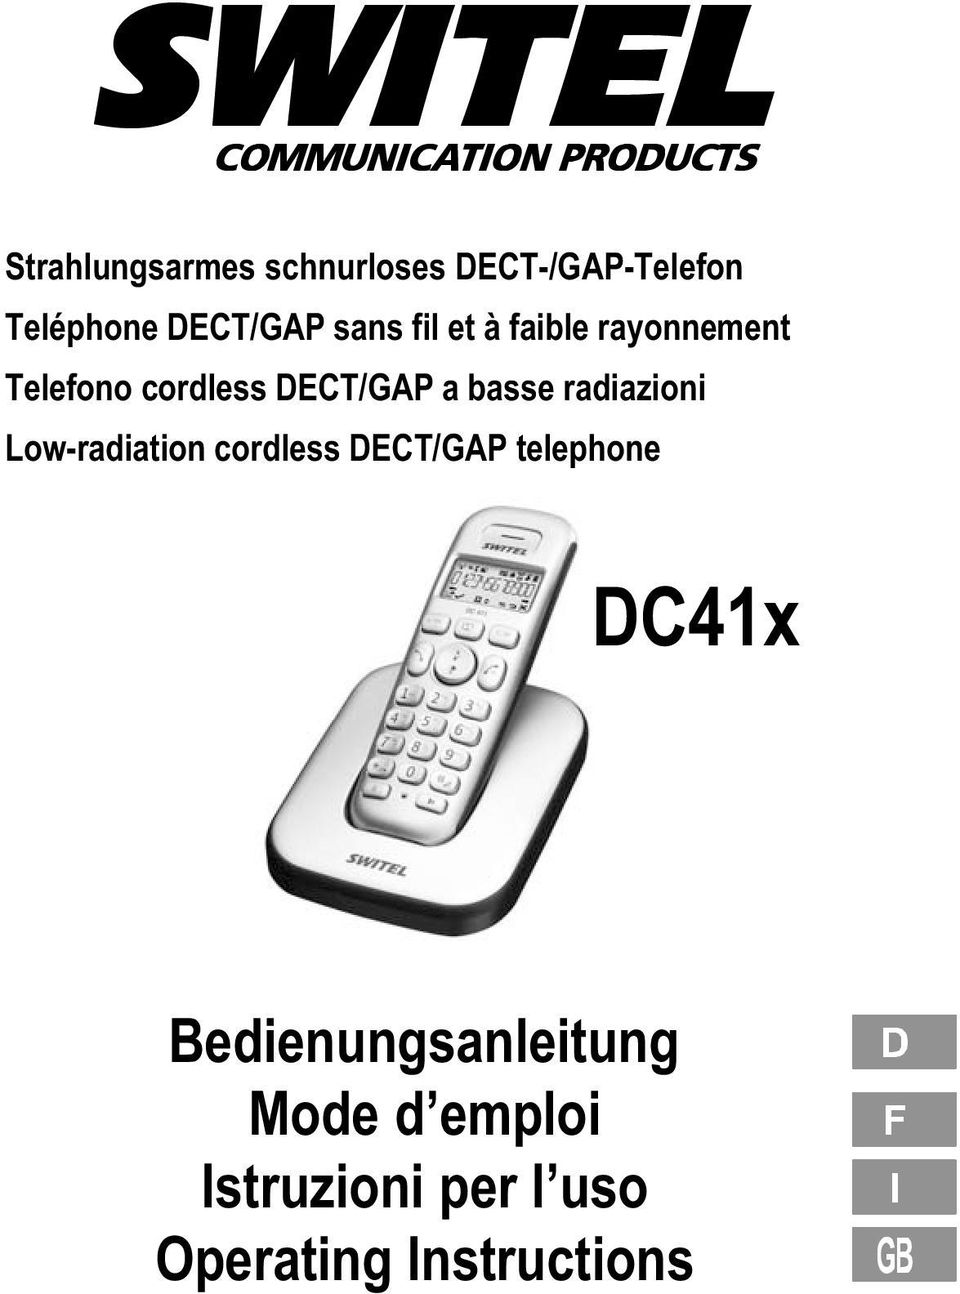 radiazioni Low radiation cordless DECT/GAP telephone DC41x